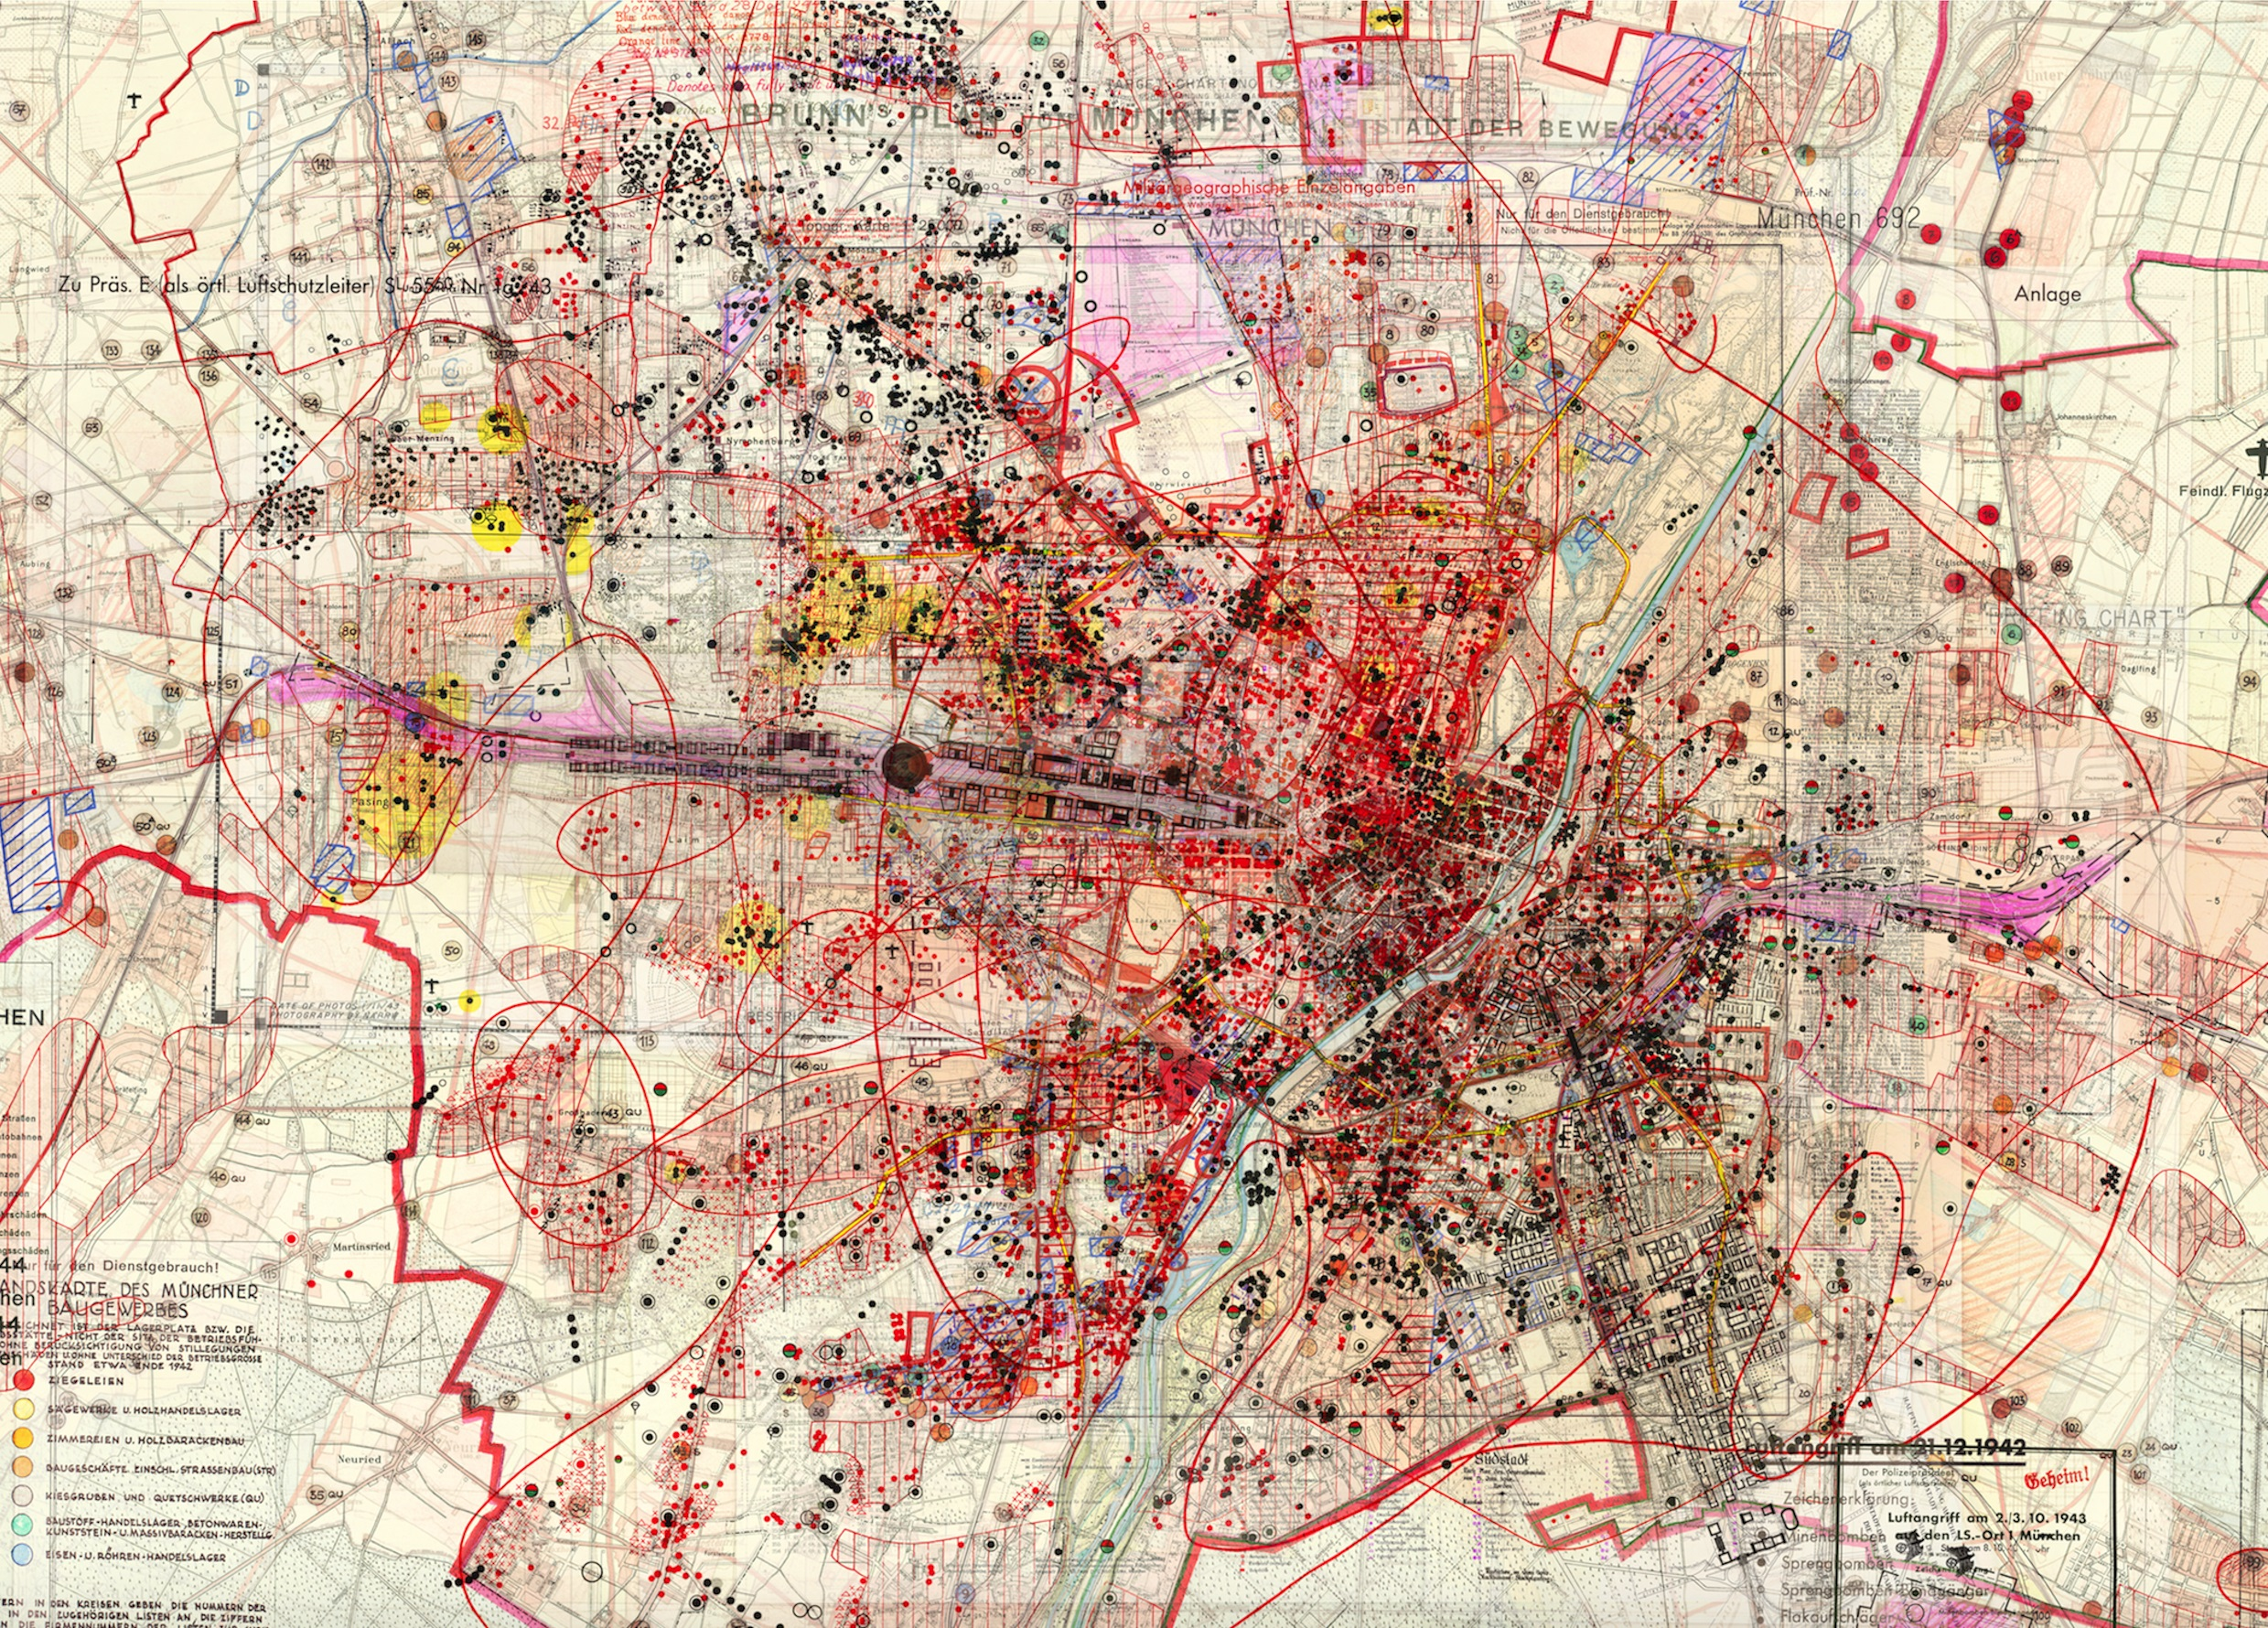 2479x1780 Asca Cities Project Drawing Like A State Maps, Modernity